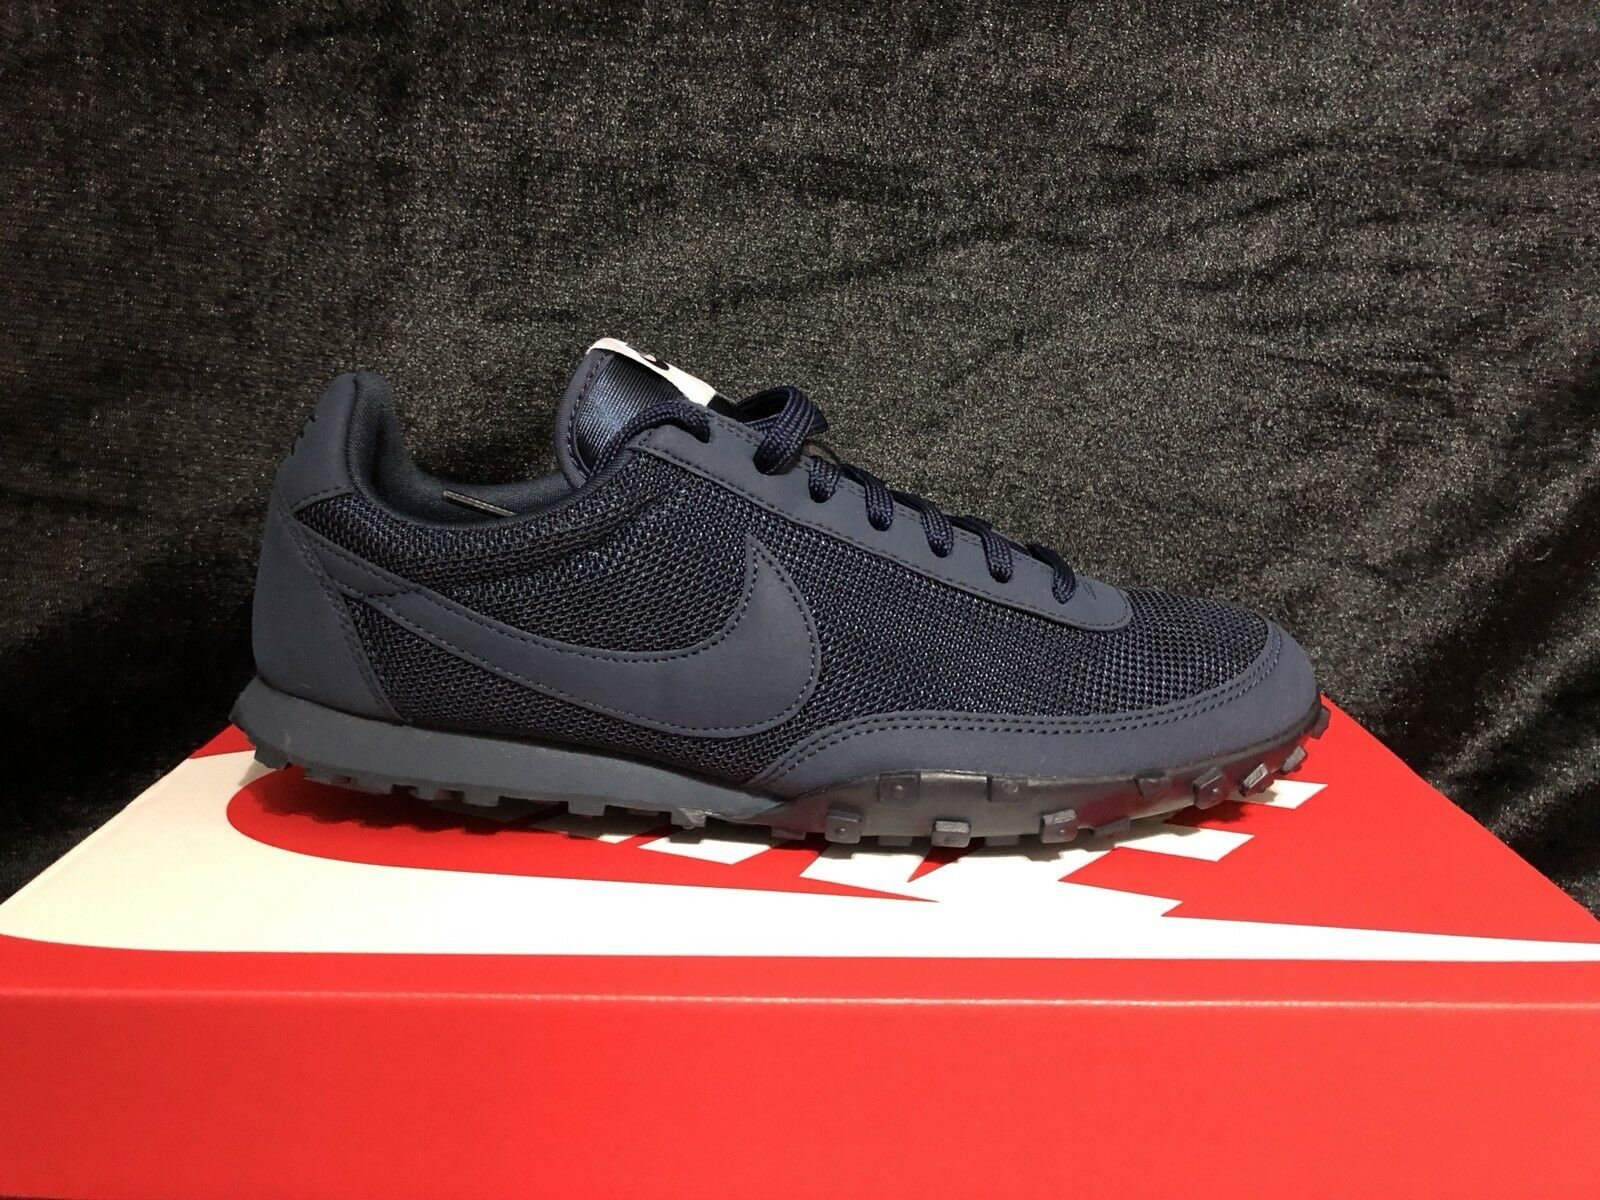 NIKE WAFFLE RACER '17 PRM RUNNING SHOES NEW Sz (876257-400)